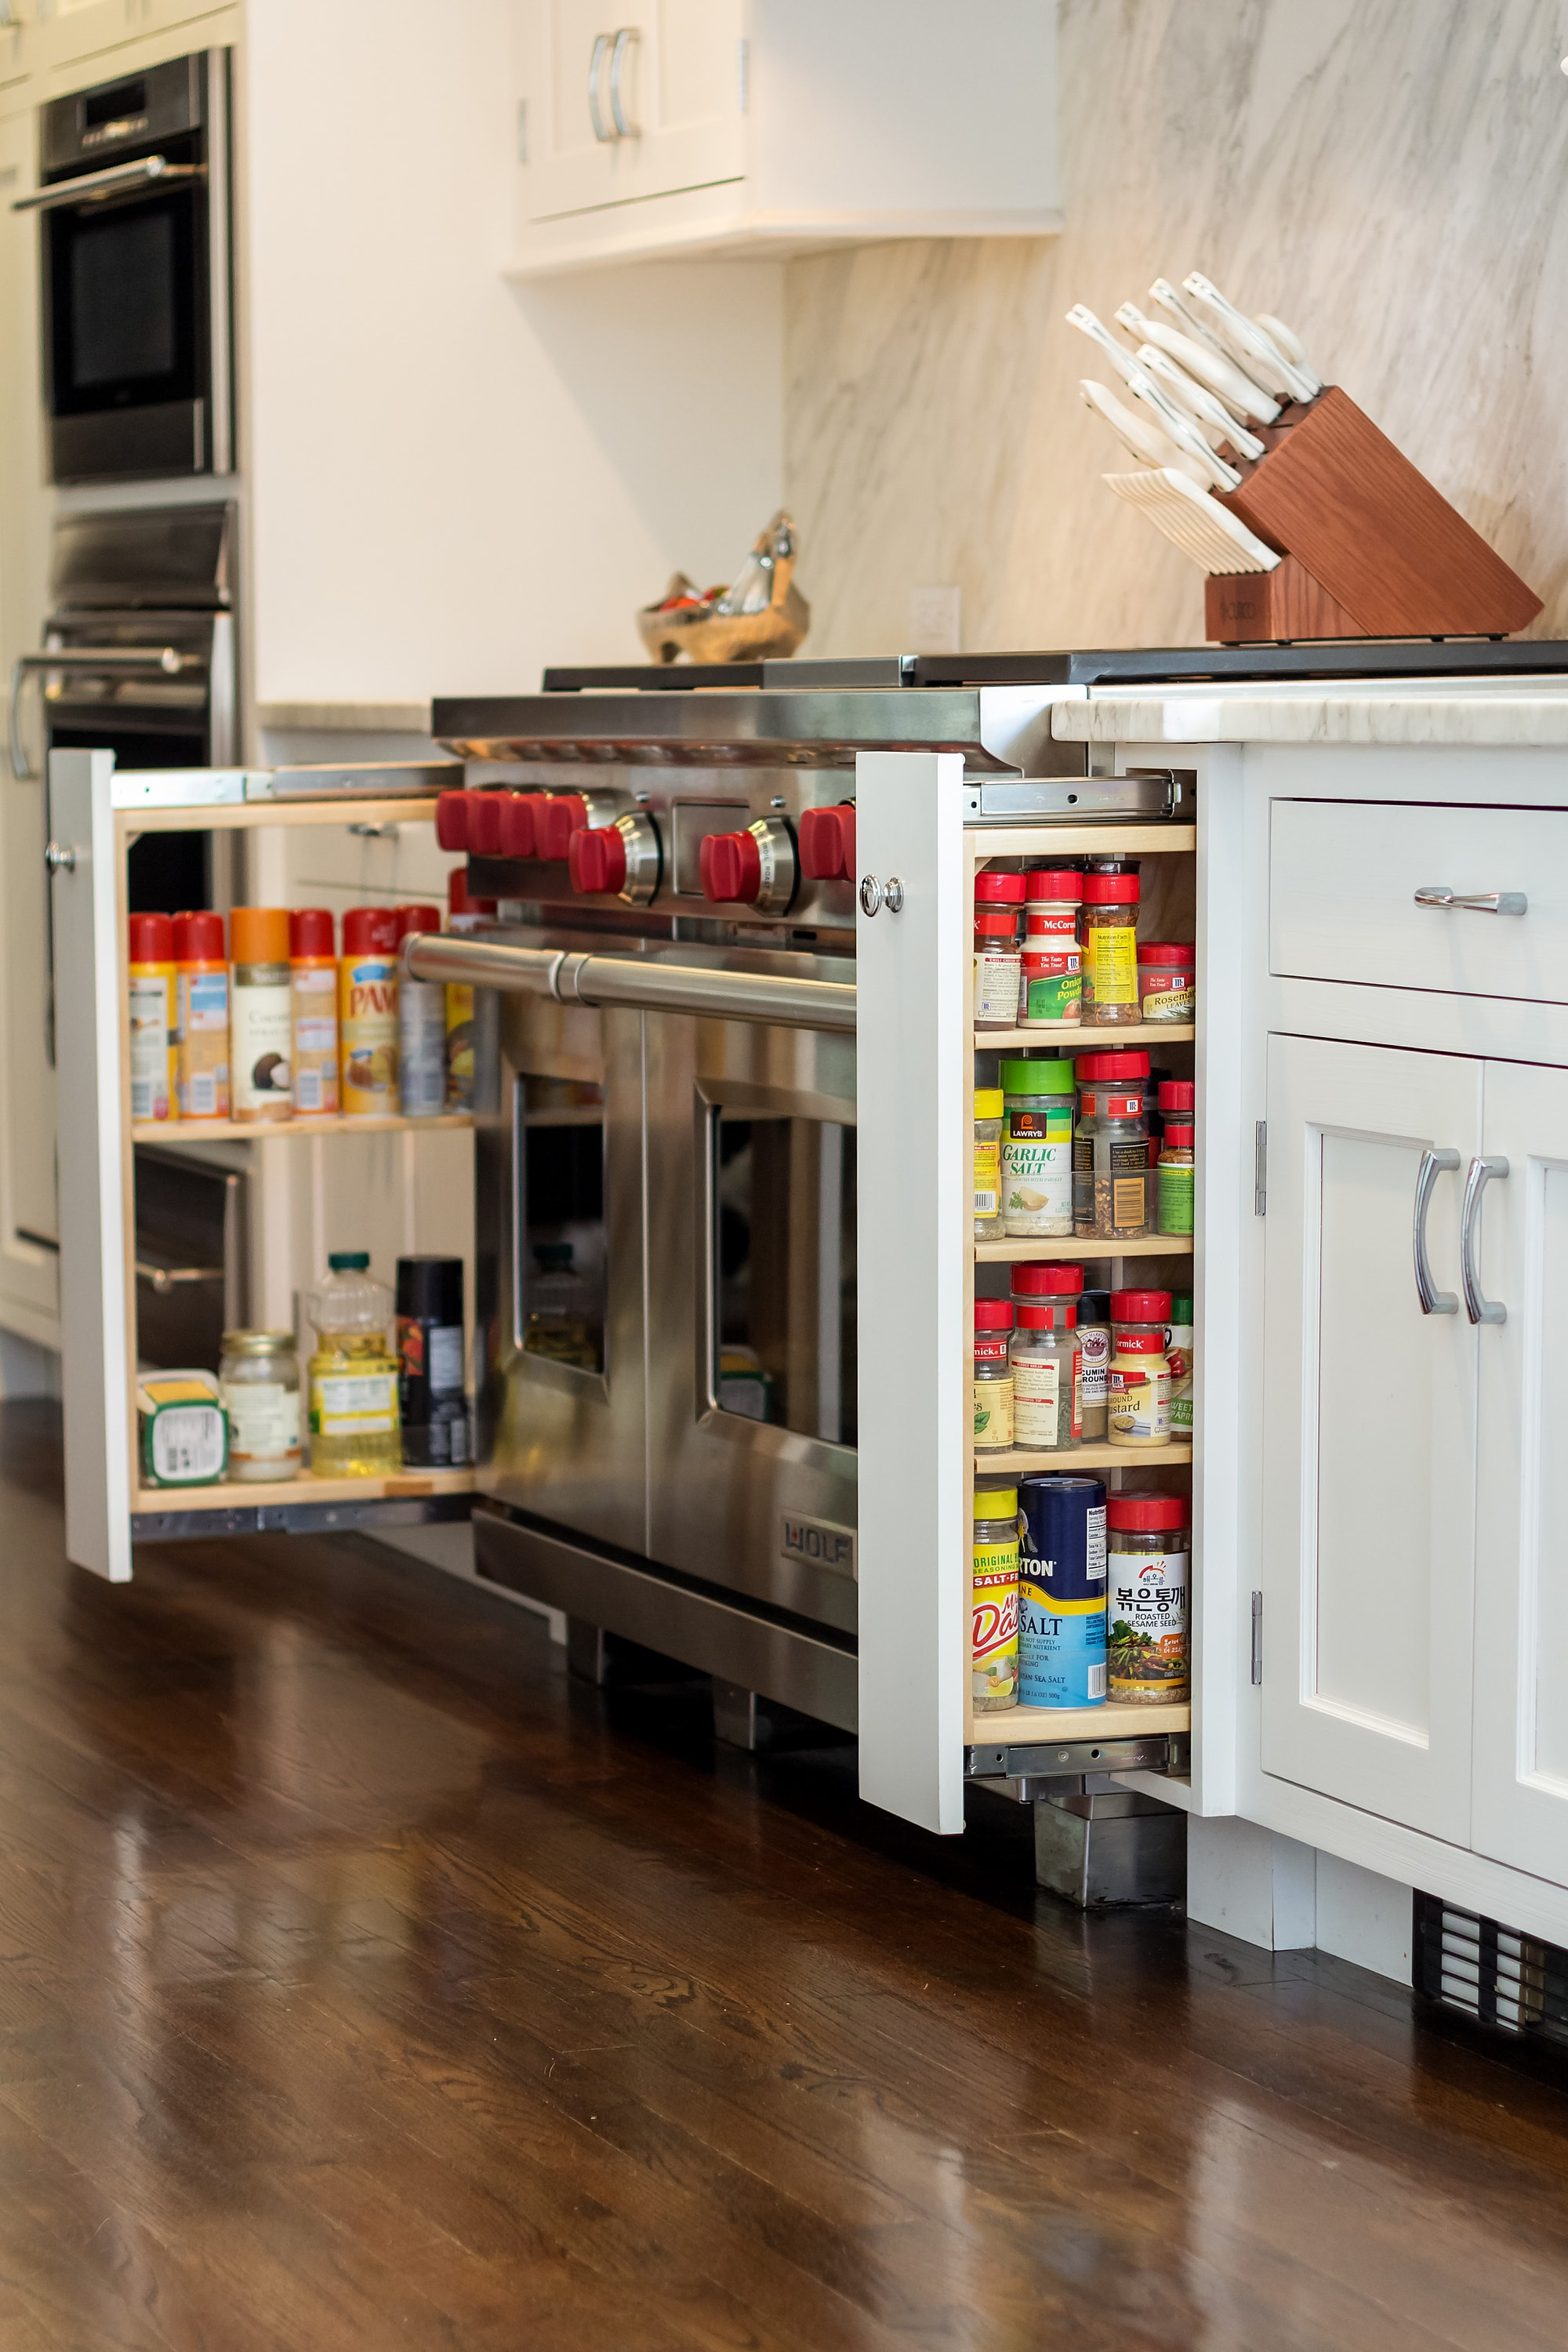 Transitional style kitchen with space saving cabinet